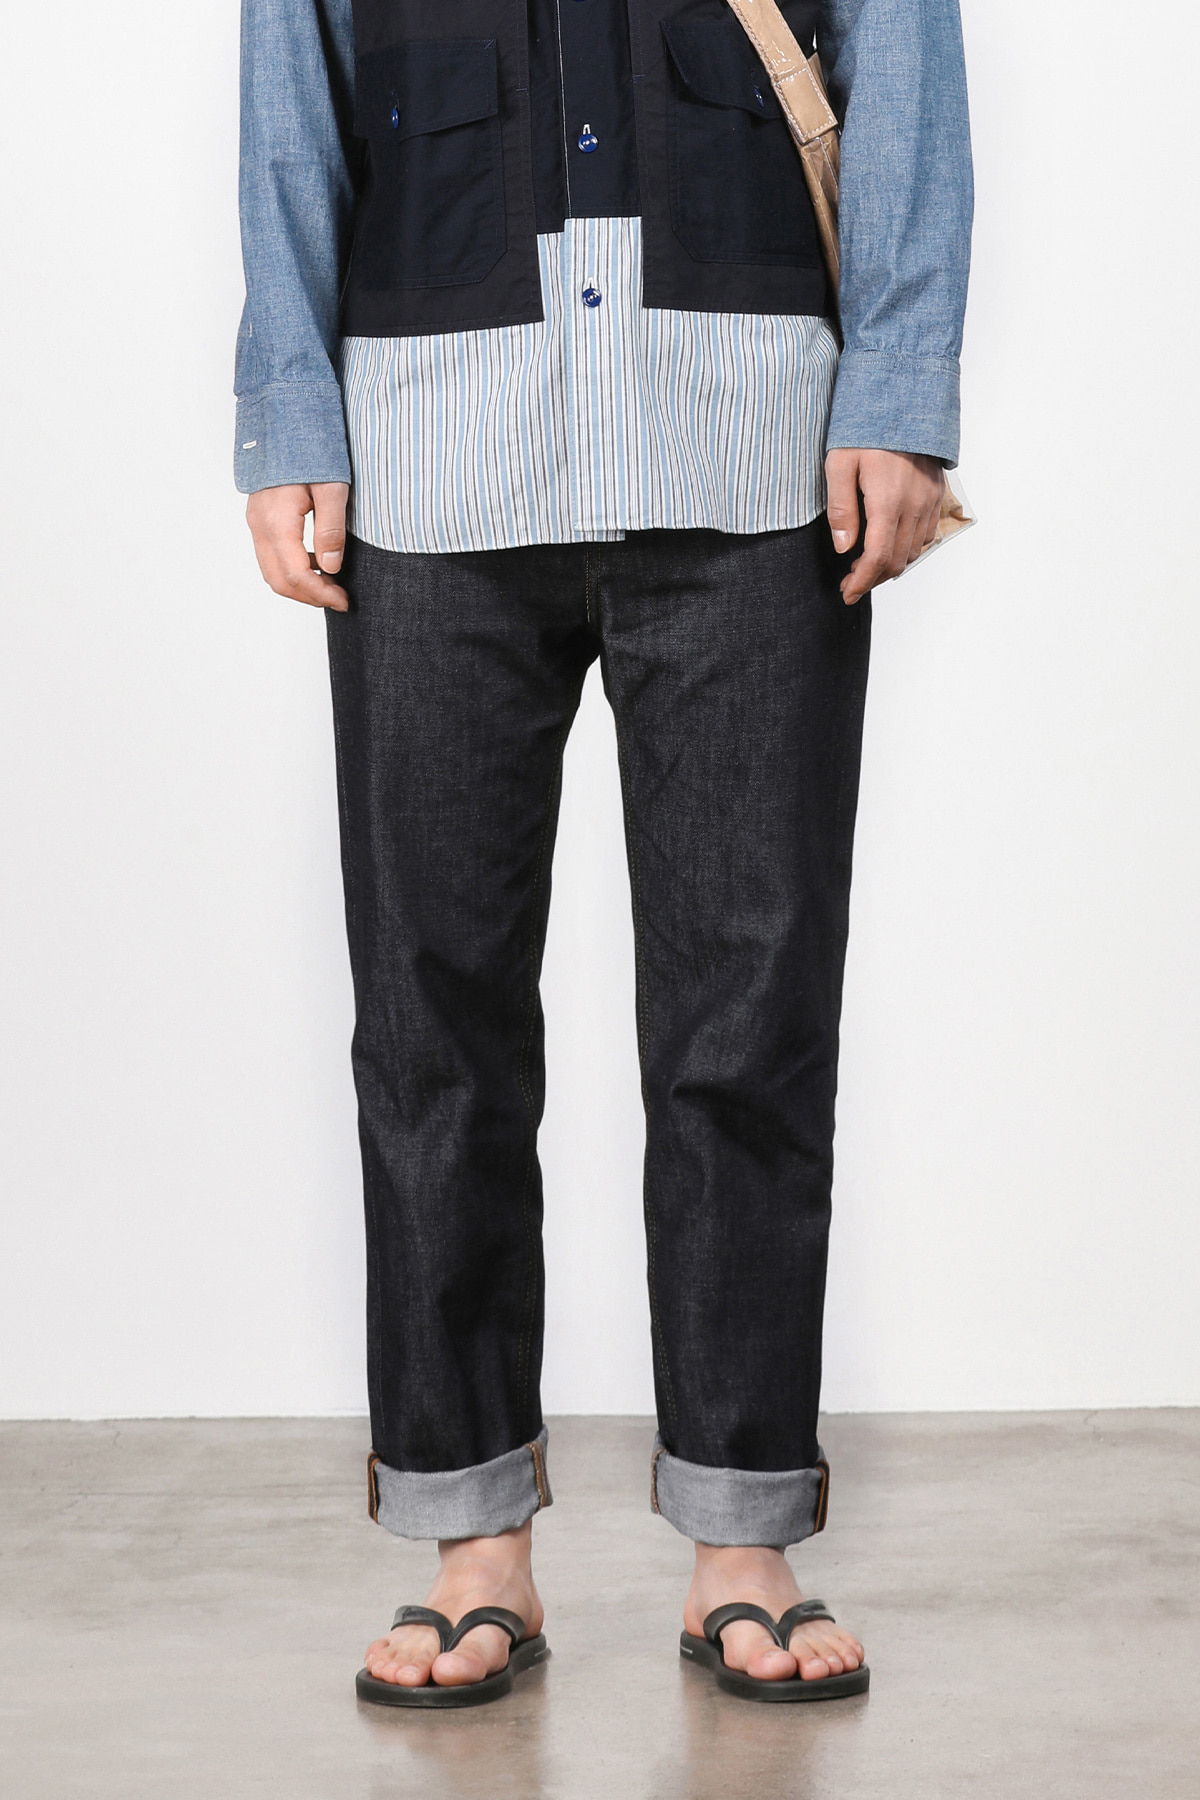 페이탈리즘 #0196 Minimal denim standard fit